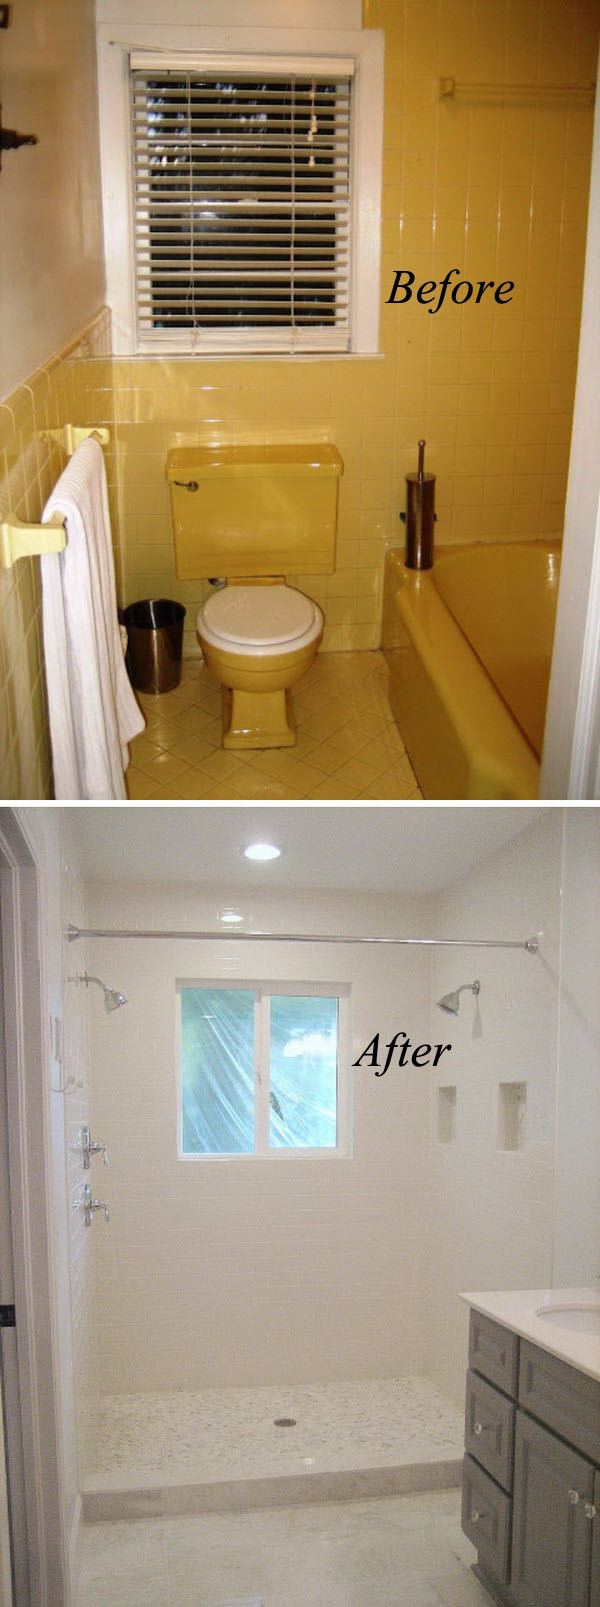 33 inspirational small bathroom remodel before and after - Small bathroom remodel with tub ...